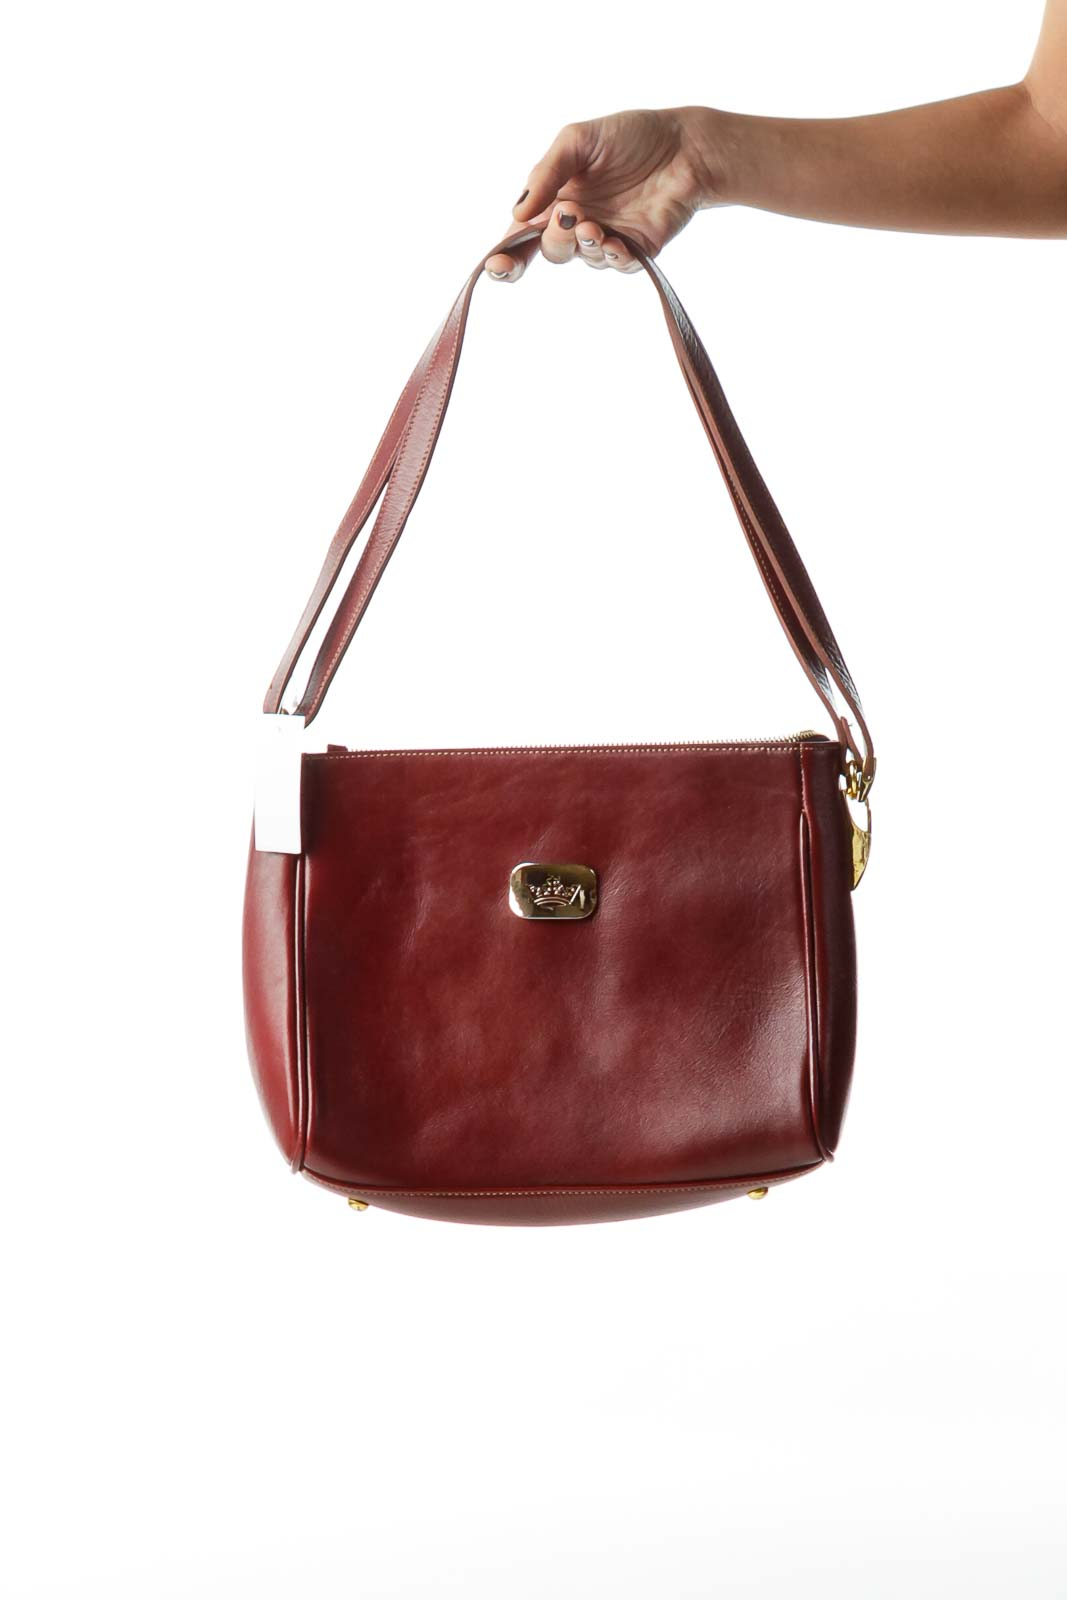 Burgundy Shoulder Bag with Gold Metal Accents